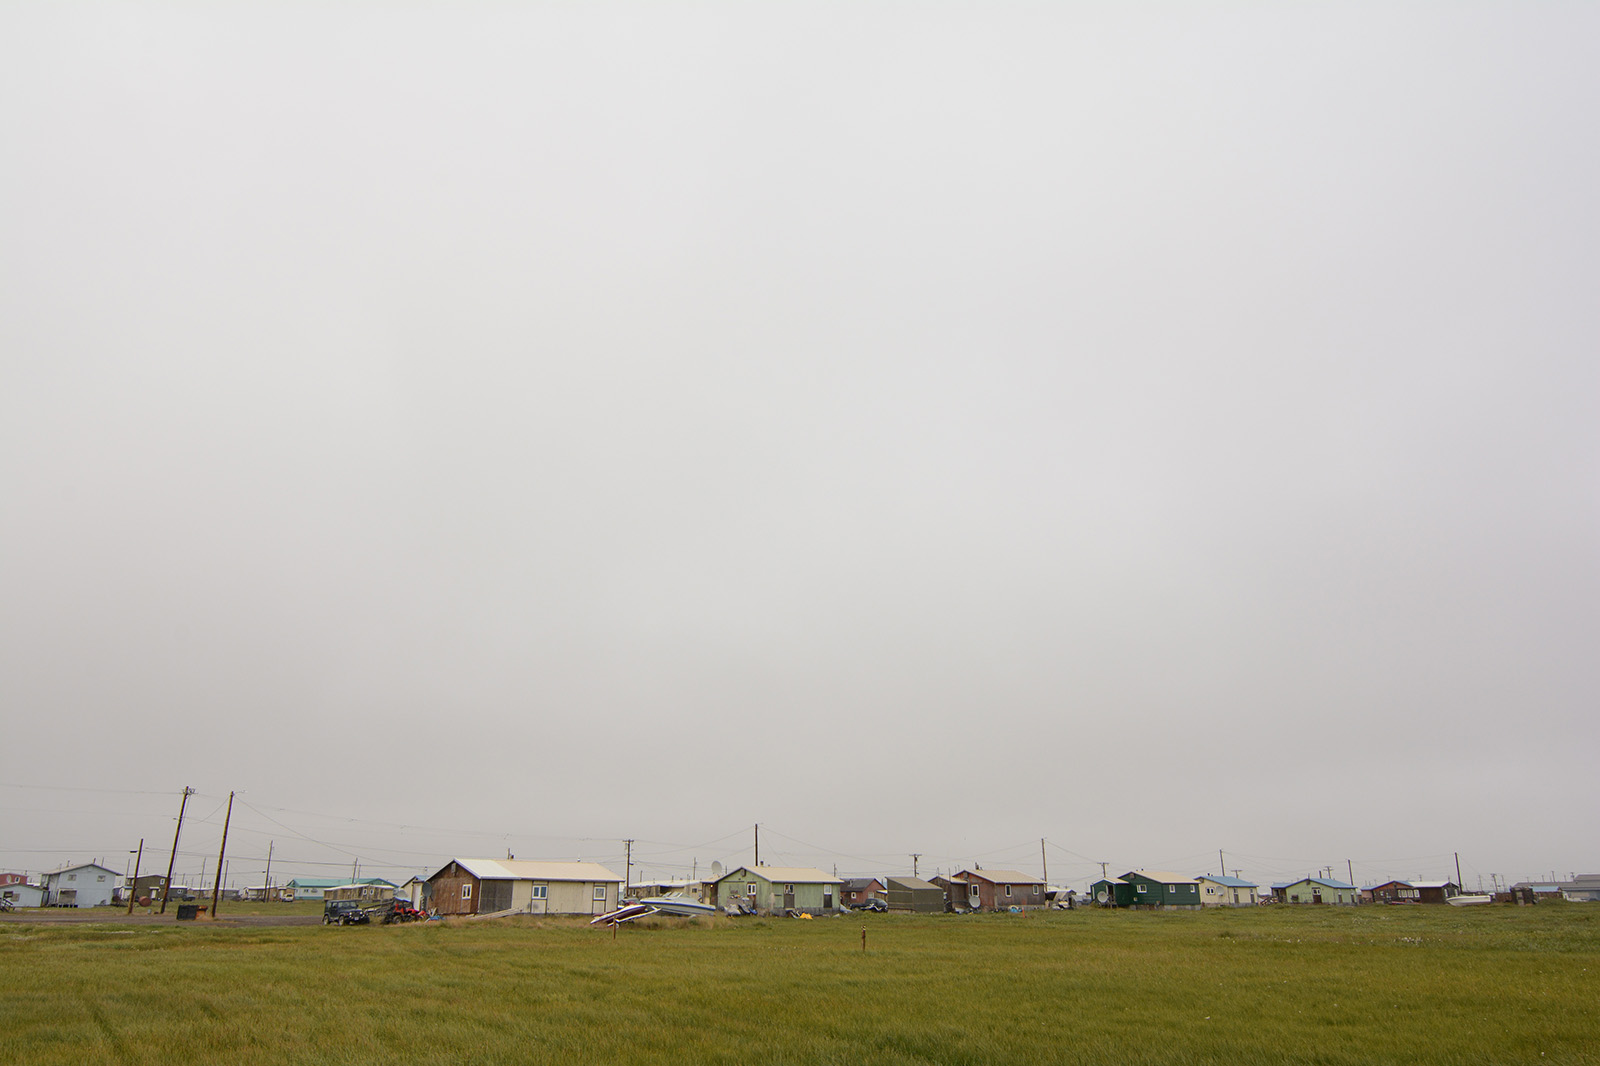 A row of small homes in Nuiqsut, Alaska, under an expansive gray sky